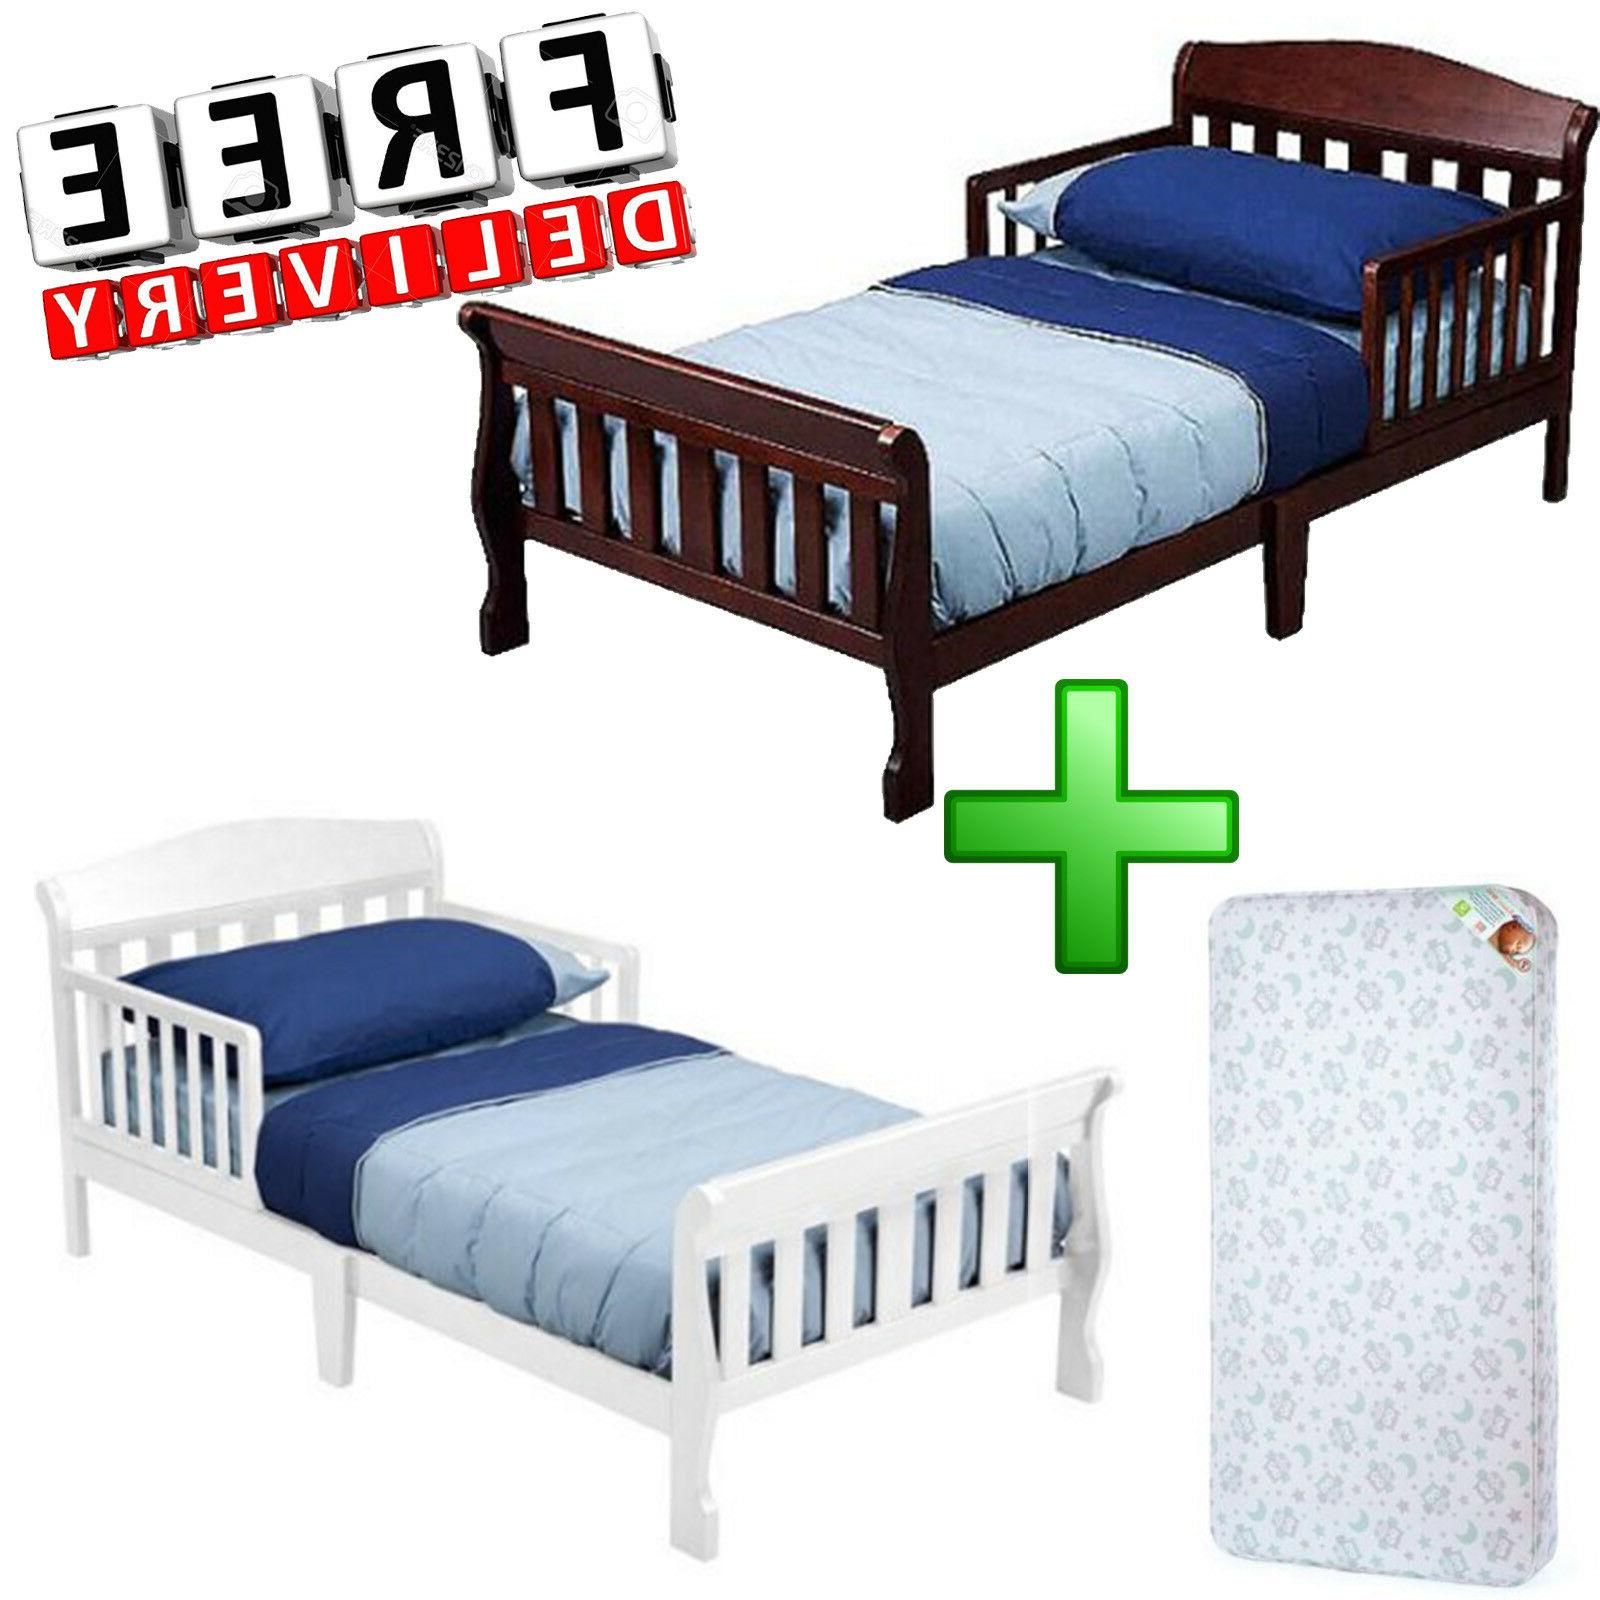 Toddler Bed With Mattress Wood Girl Boy Furniture Bedroom Ch